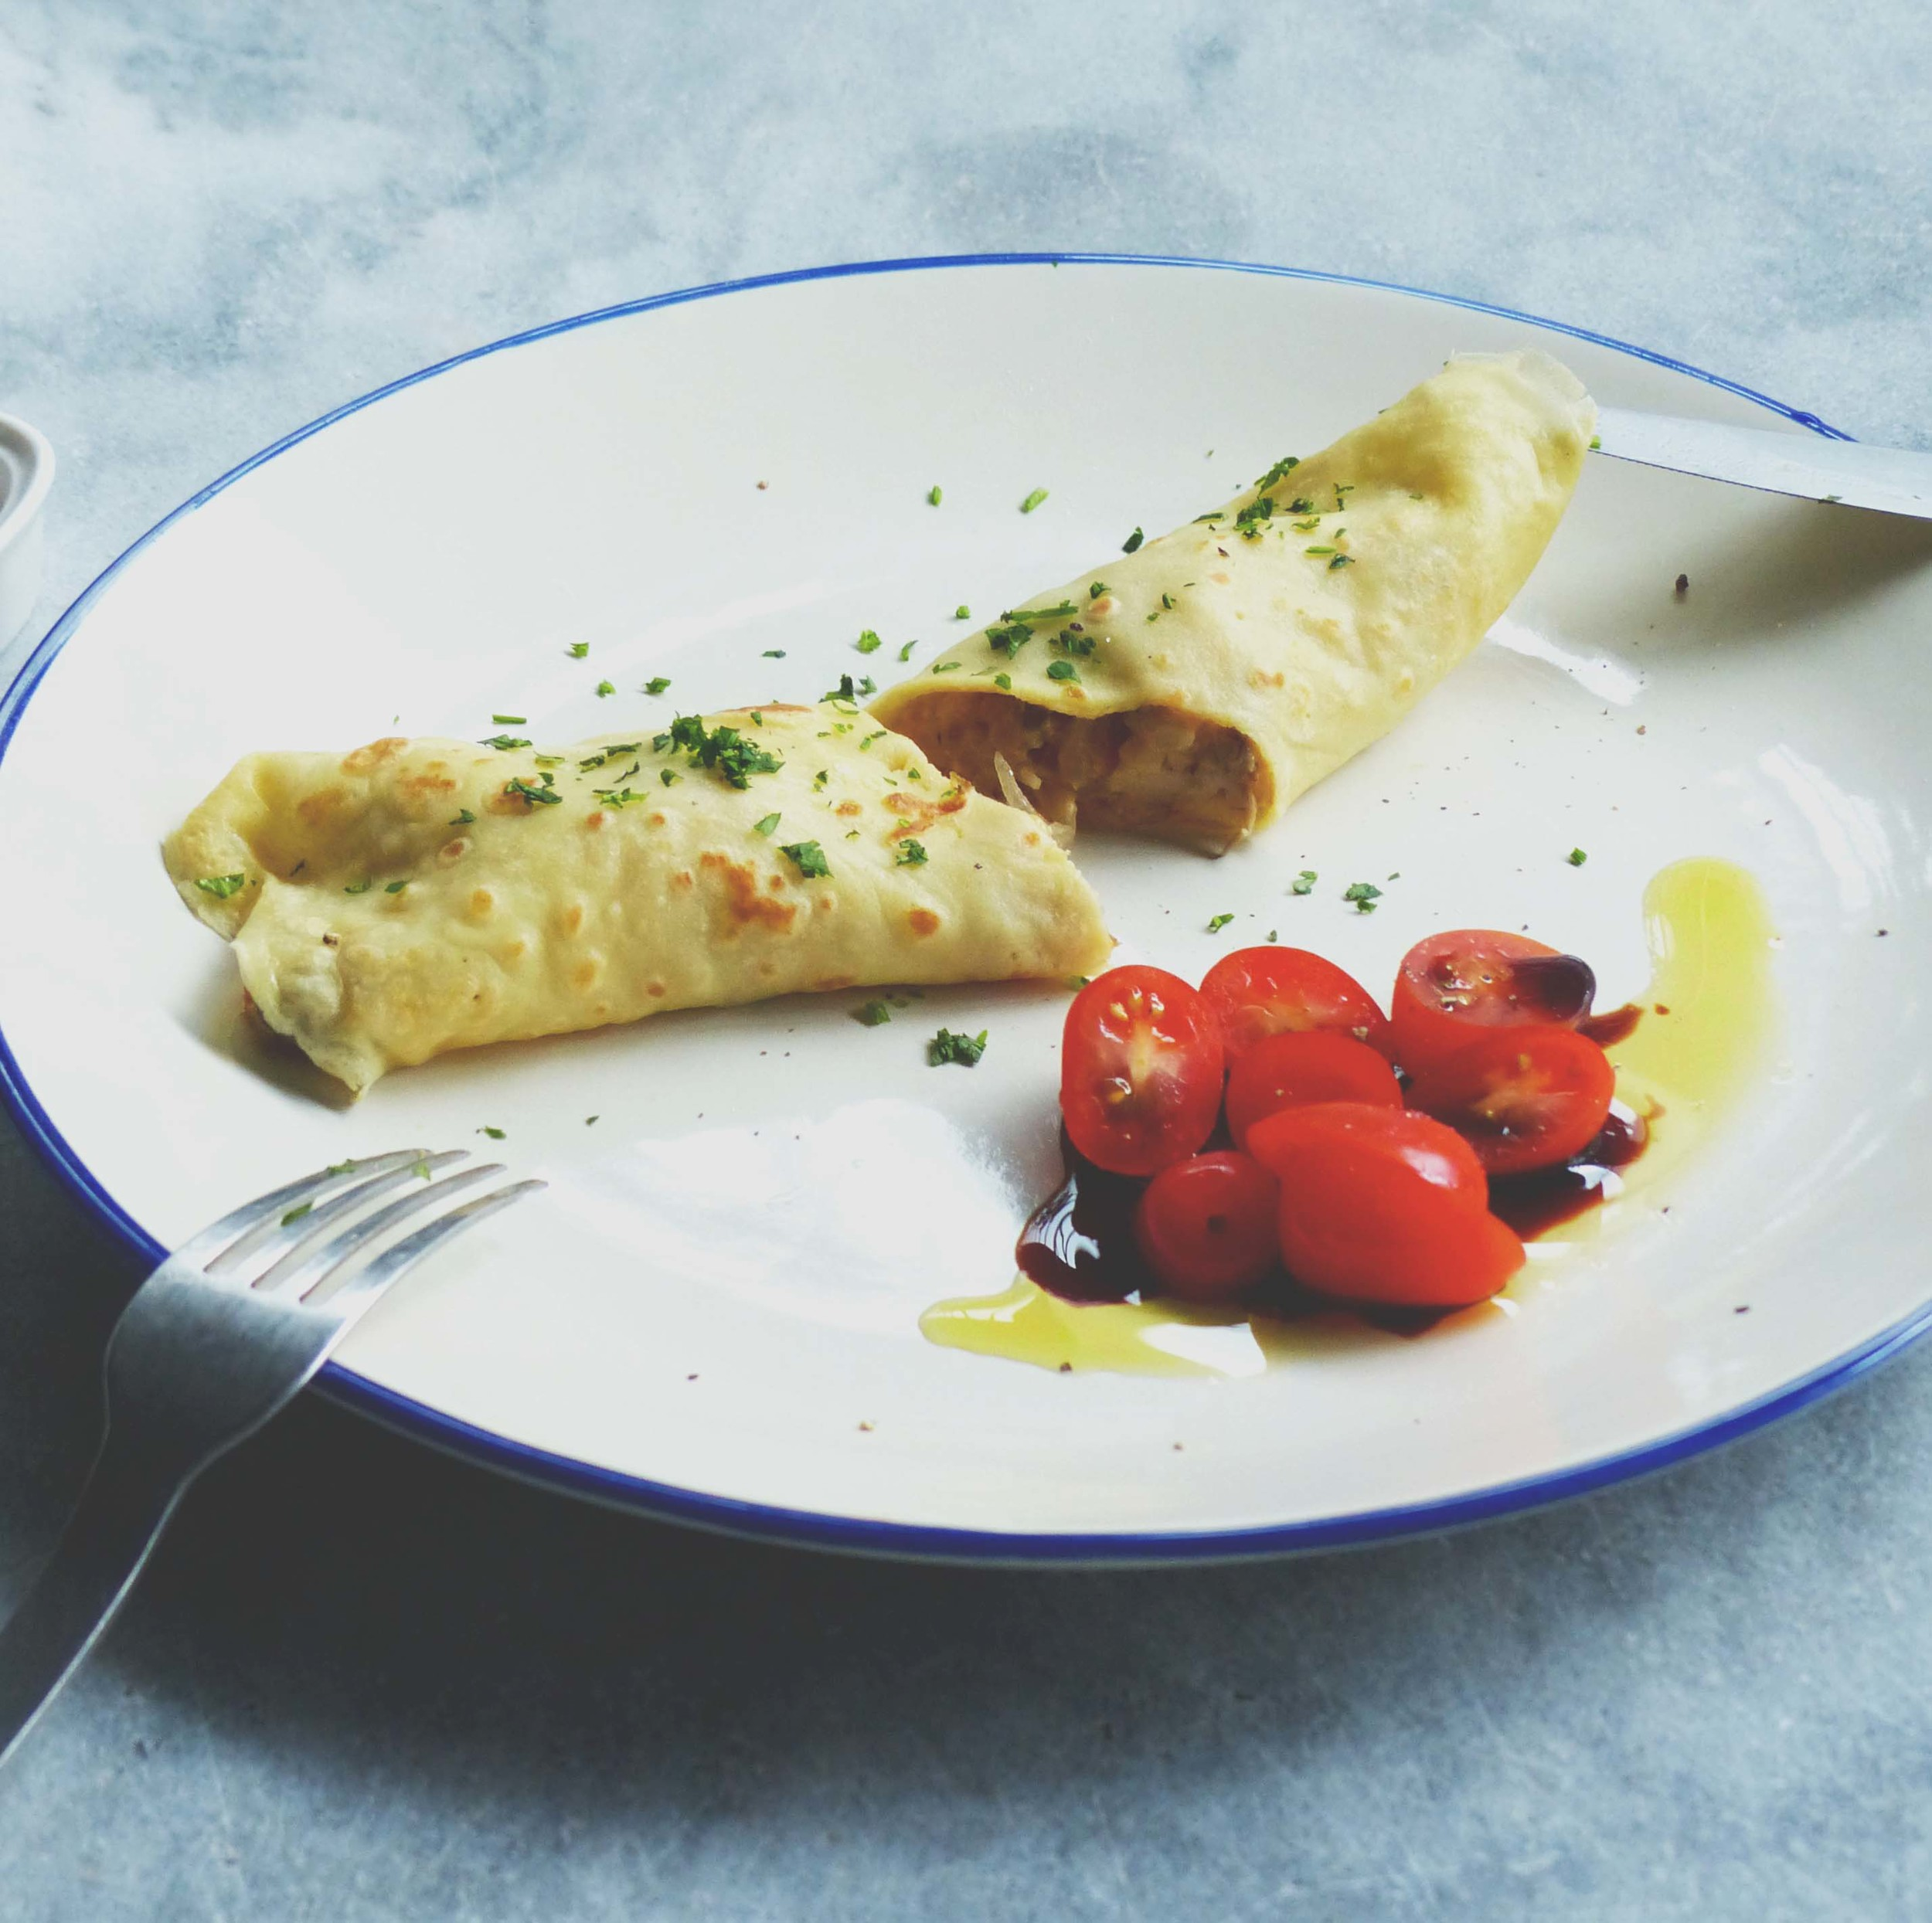 easy homemade crepe - an excellent munchies for the kids.